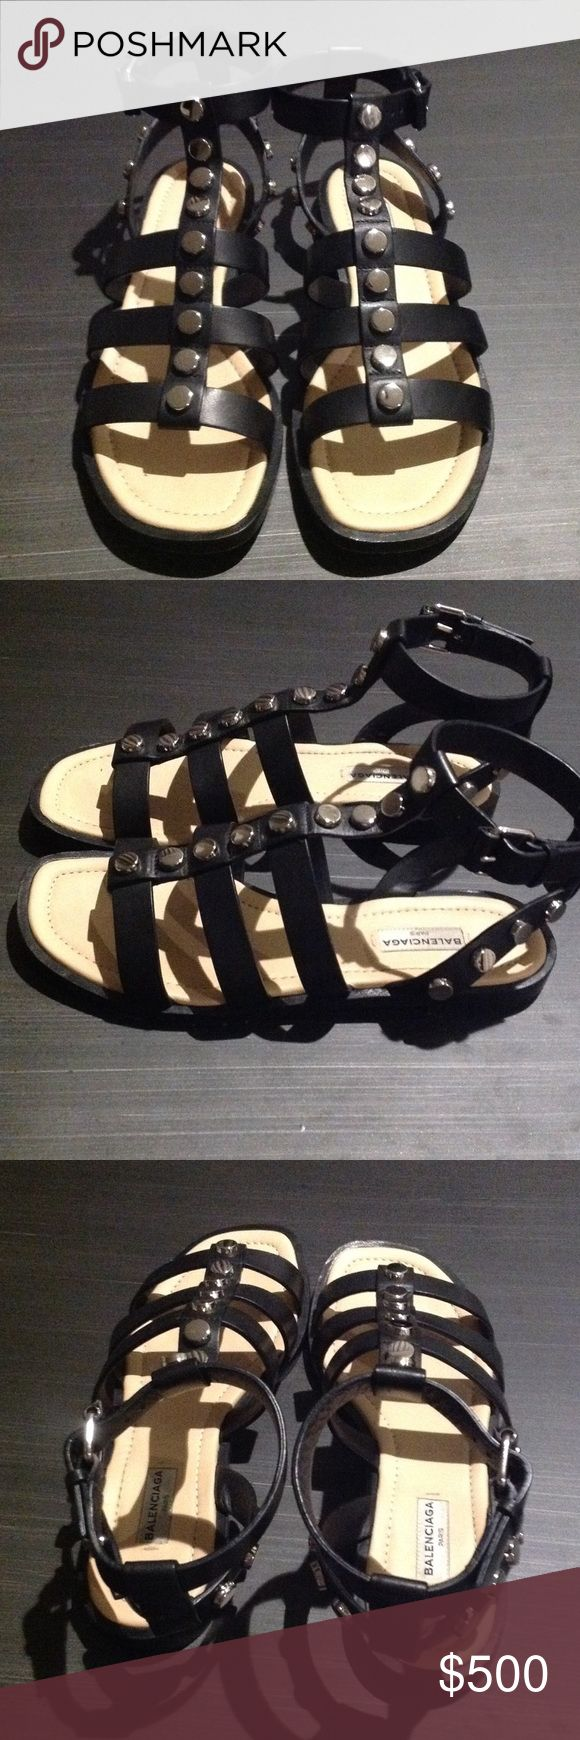 ⚡️FLASH SALE! Balenciaga black studded sandals Made in Italy.  Trendy and well made sandals with adjustable ankle strap with buckle.  Metal is rhodium, so like a dark gunmetal.  Size is 37.5.  Fits like 7.5.  Worn only once Balenciaga Shoes Sandals